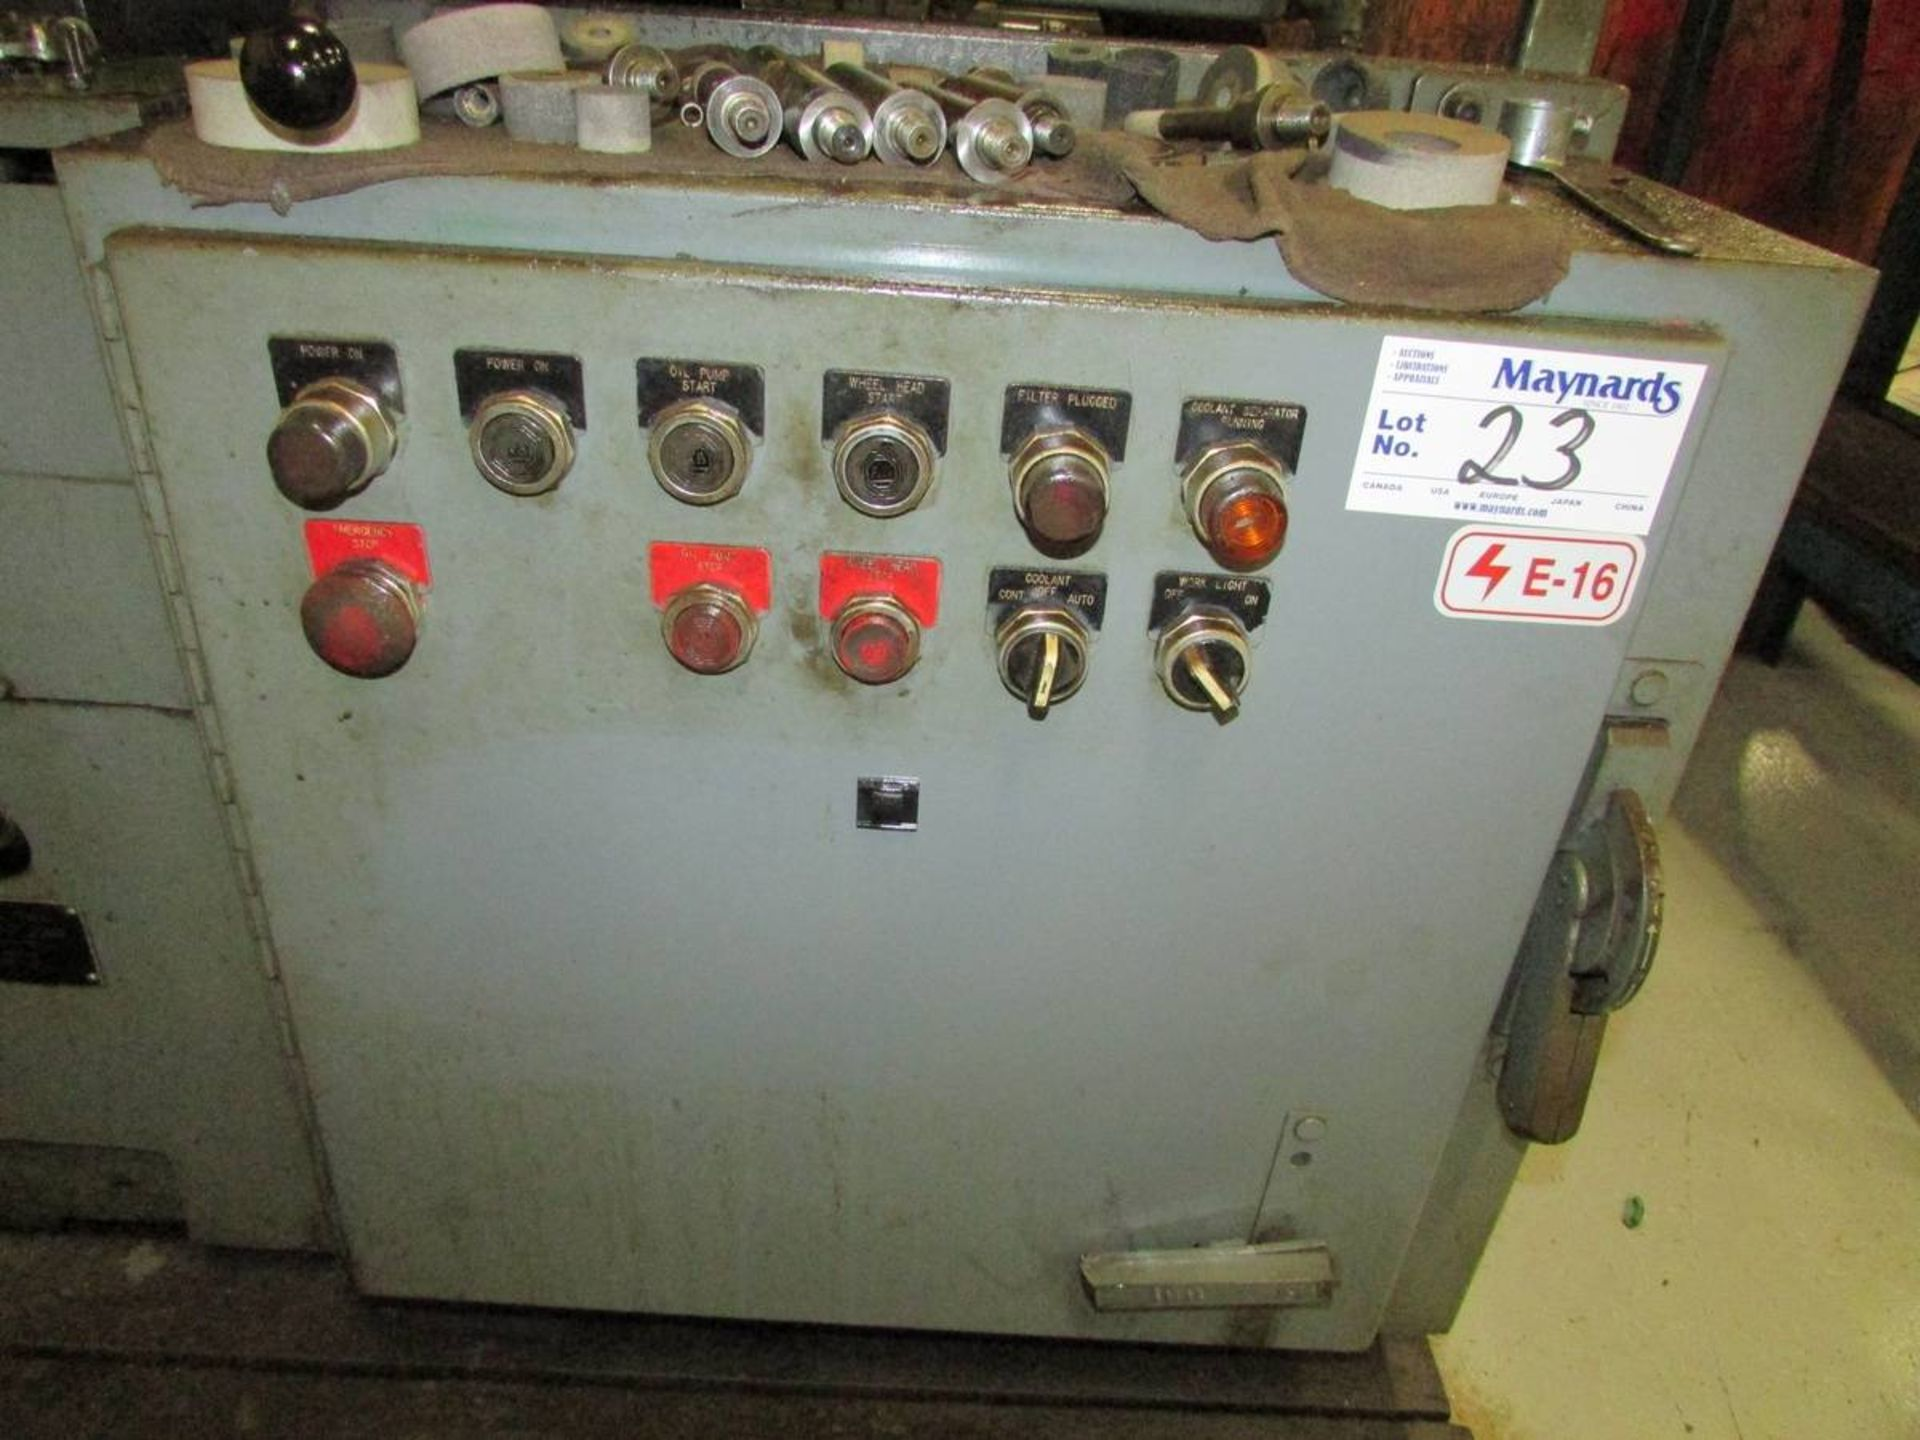 1981 Bryant 1116 ID Cylindrical Grinder - Image 12 of 20